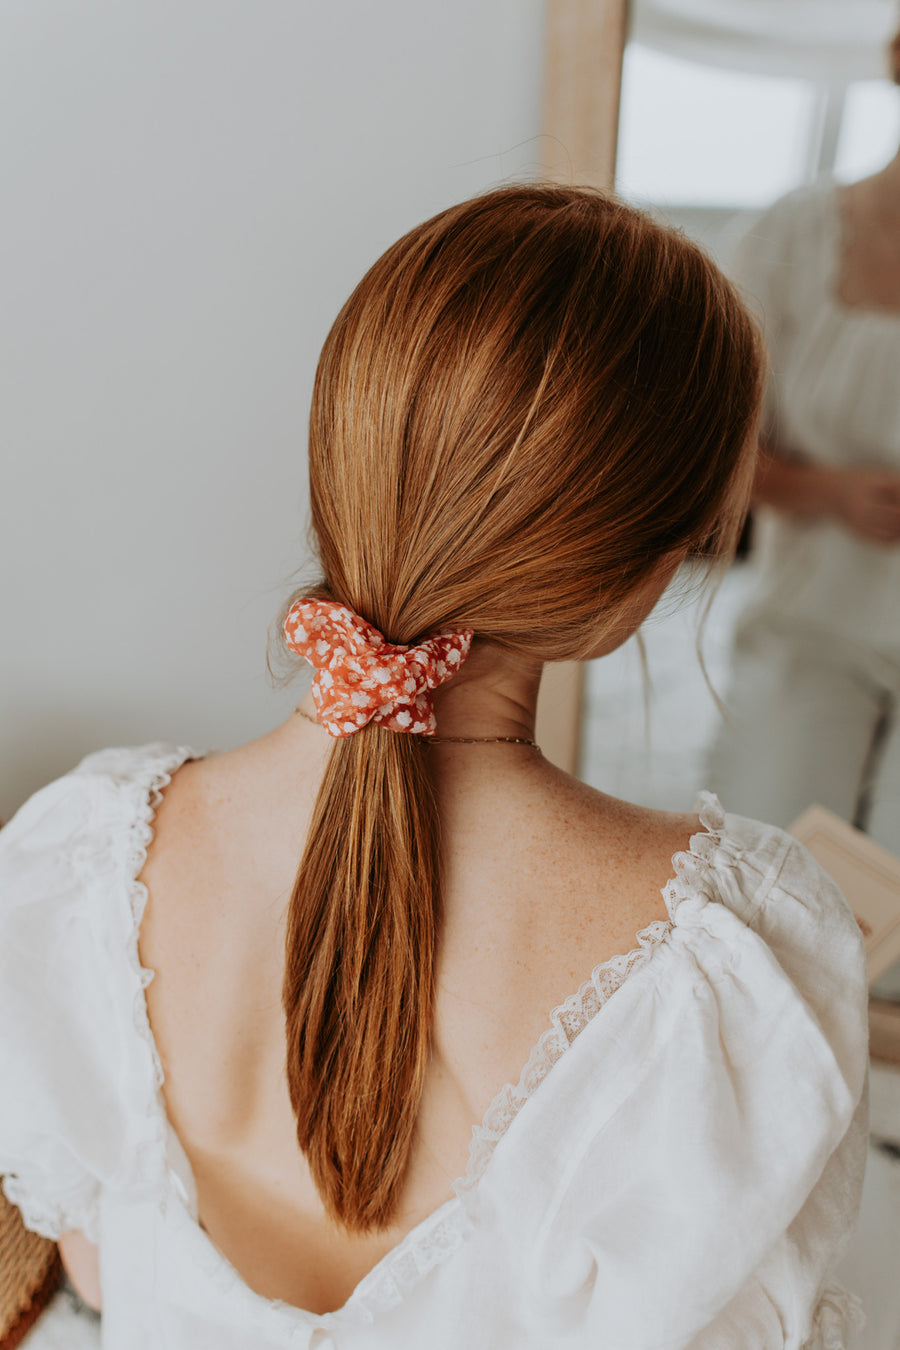 <transcy>Binibeca red scrunchie</transcy>